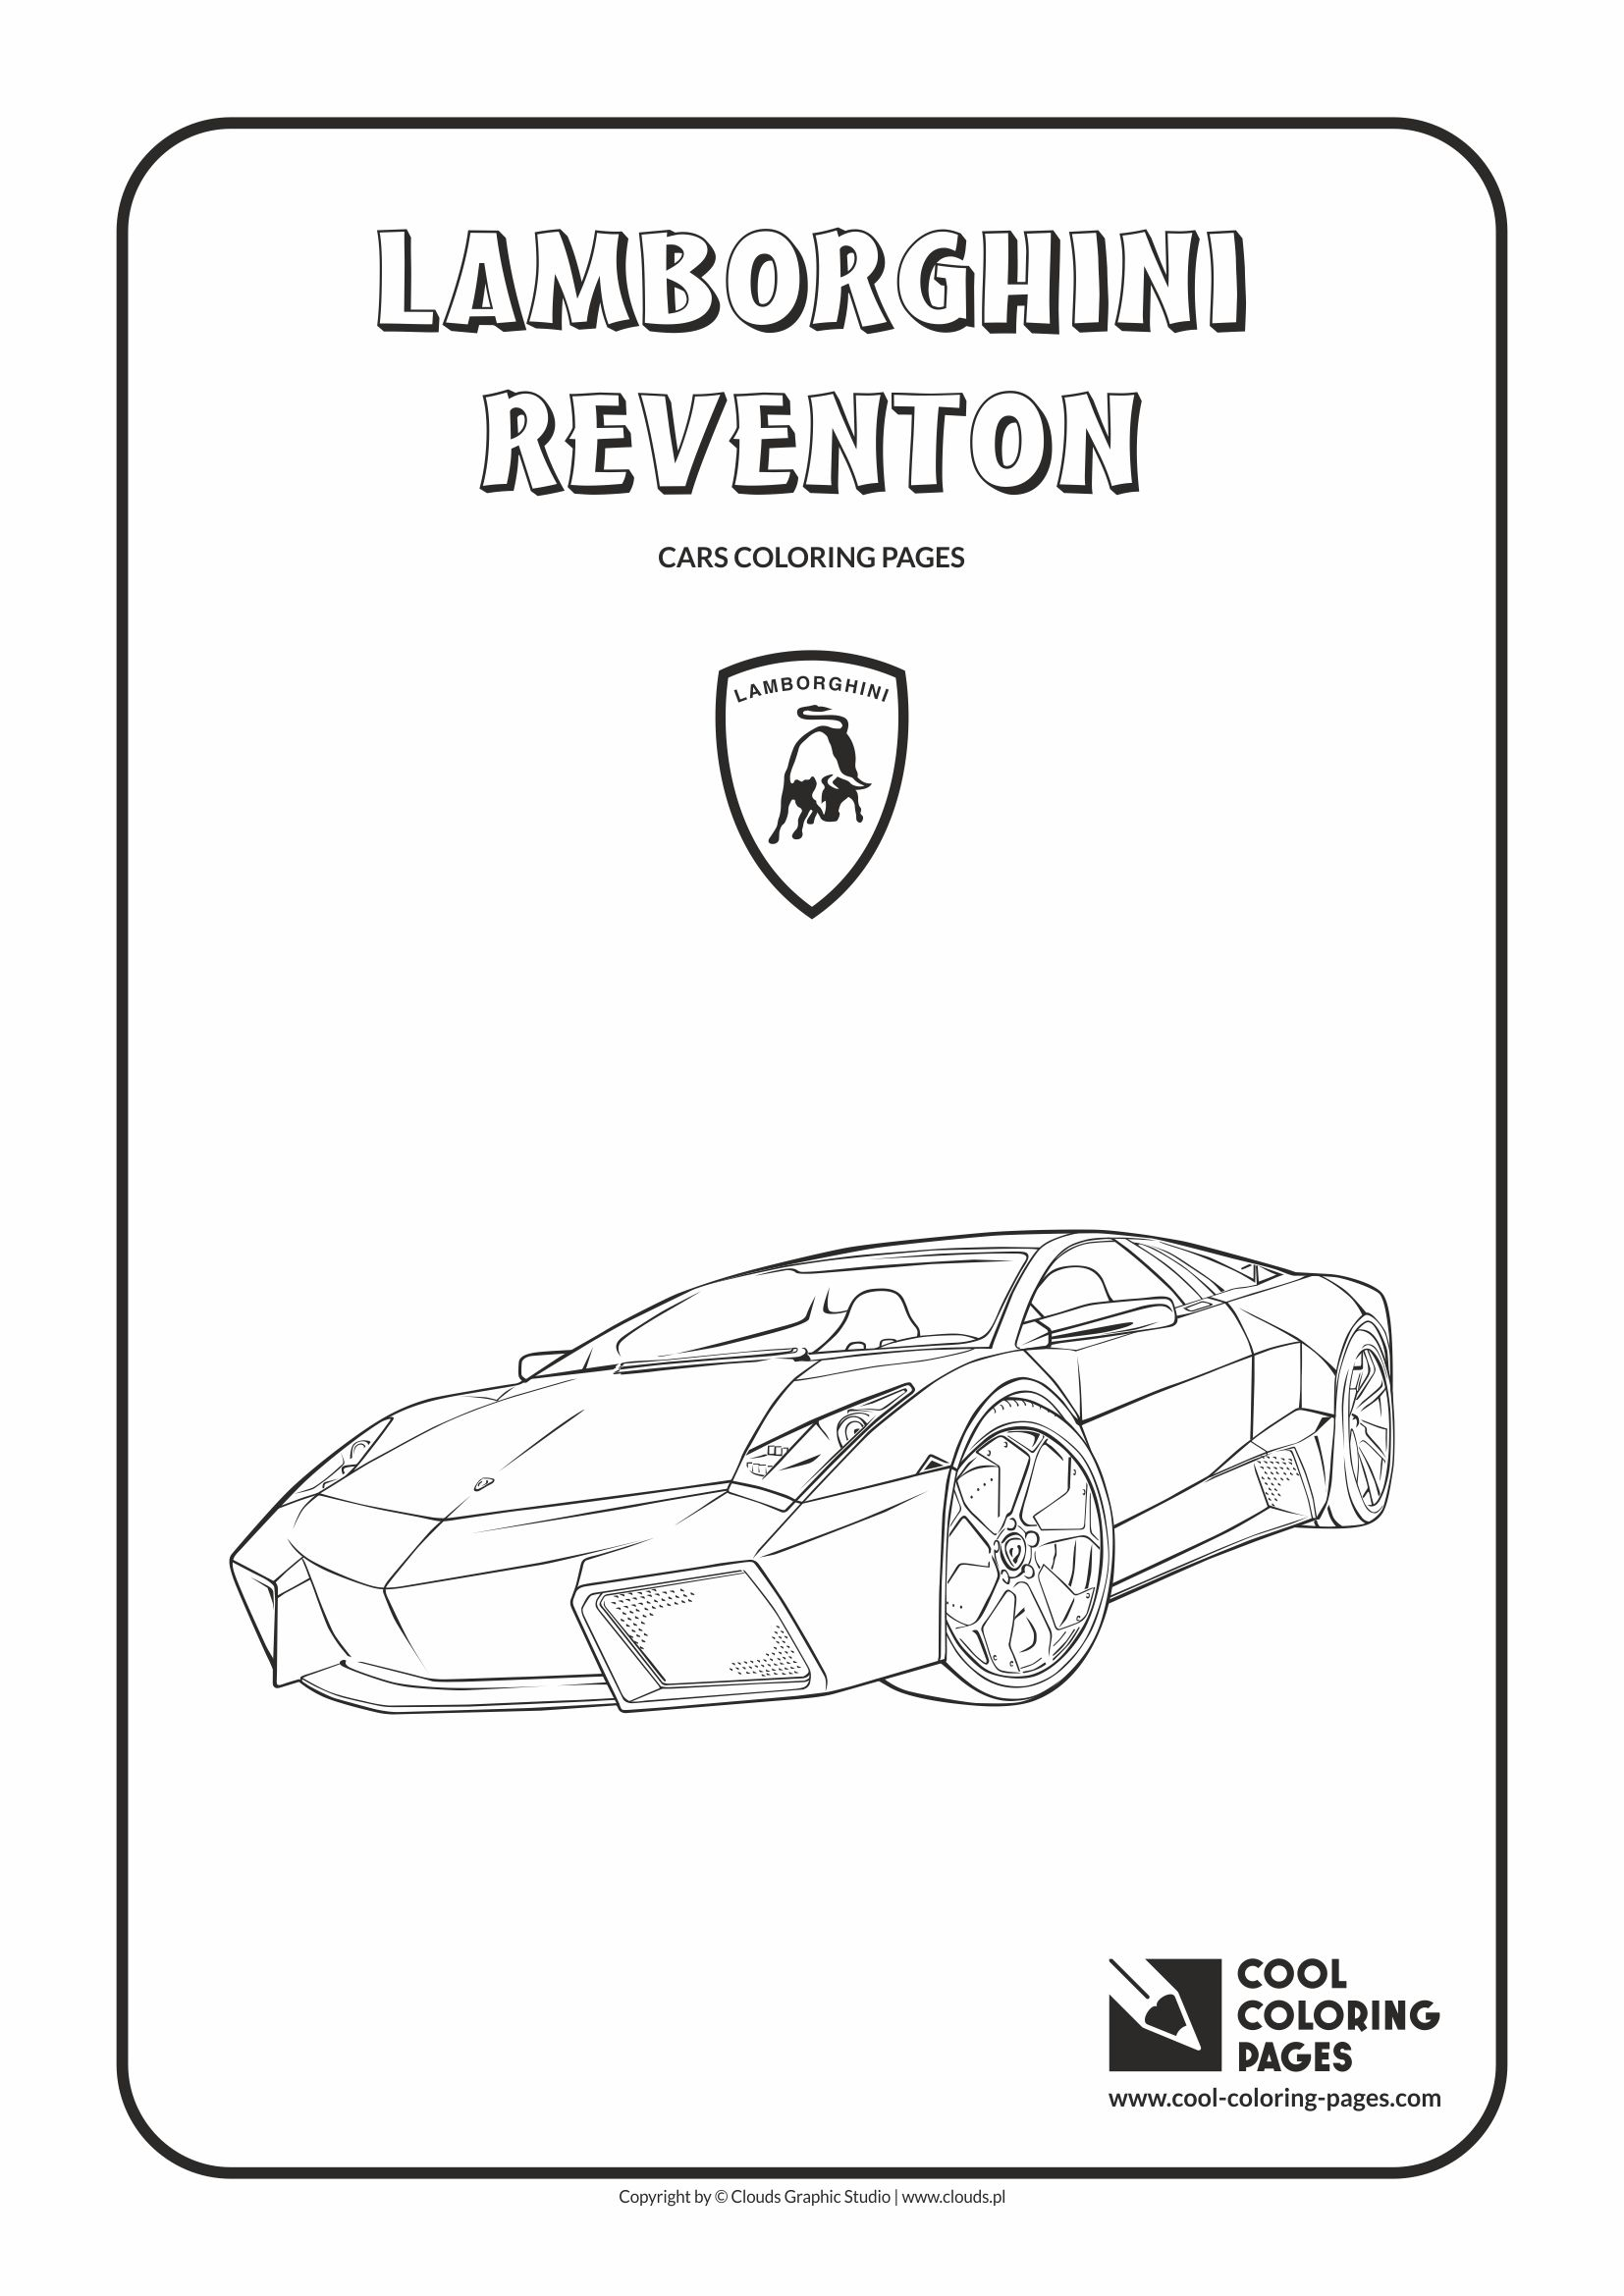 Cool Coloring Pages Cars coloring pages - Cool Coloring Pages | Free ...